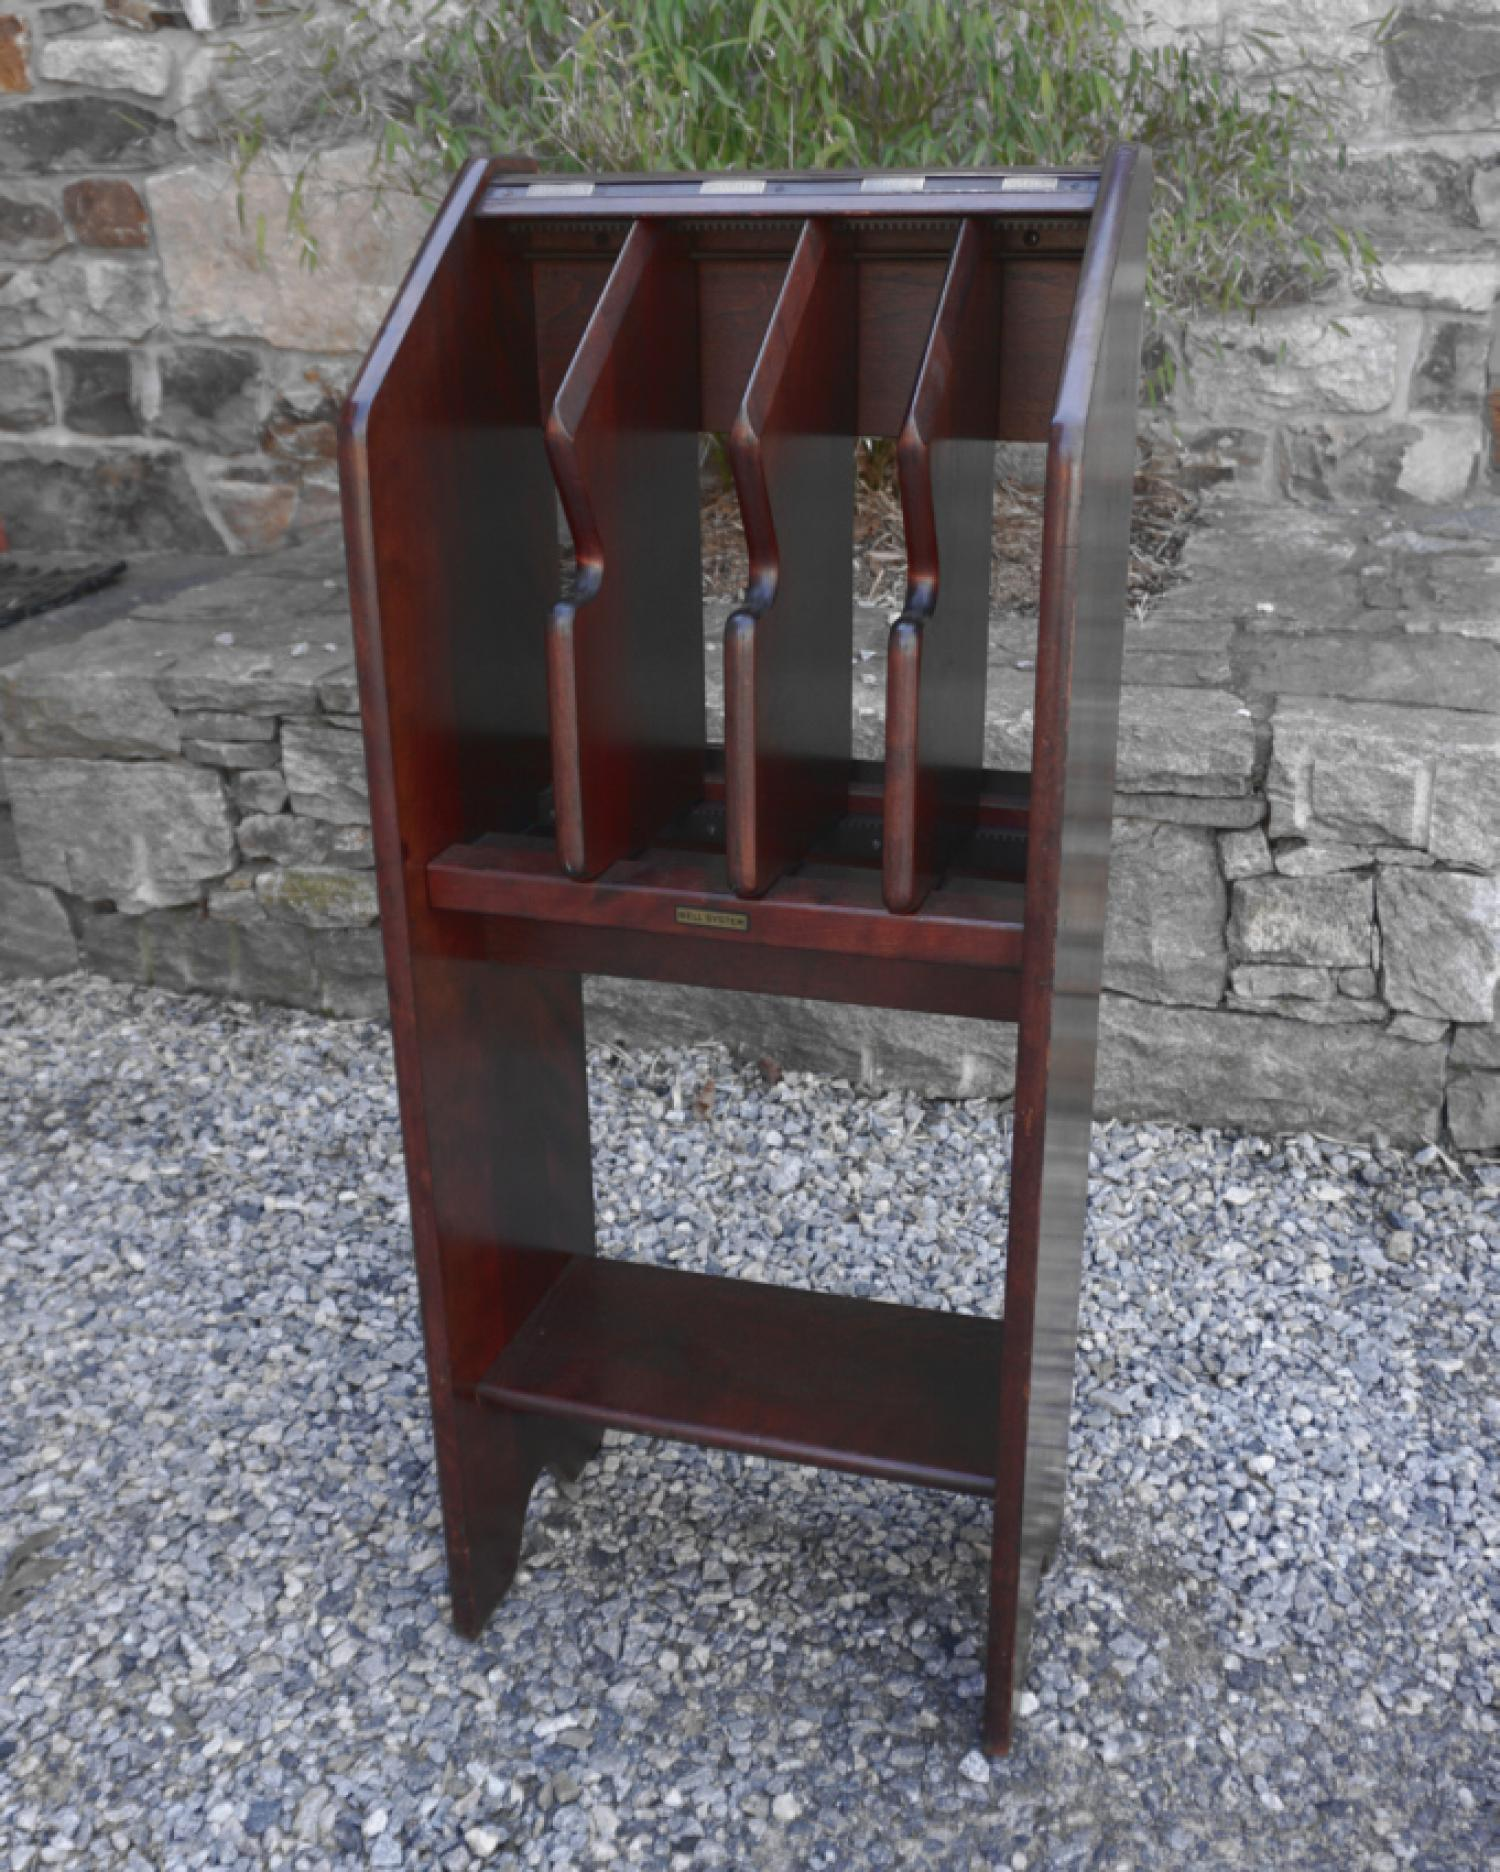 Bell System NYC telephone directory stand for NYC